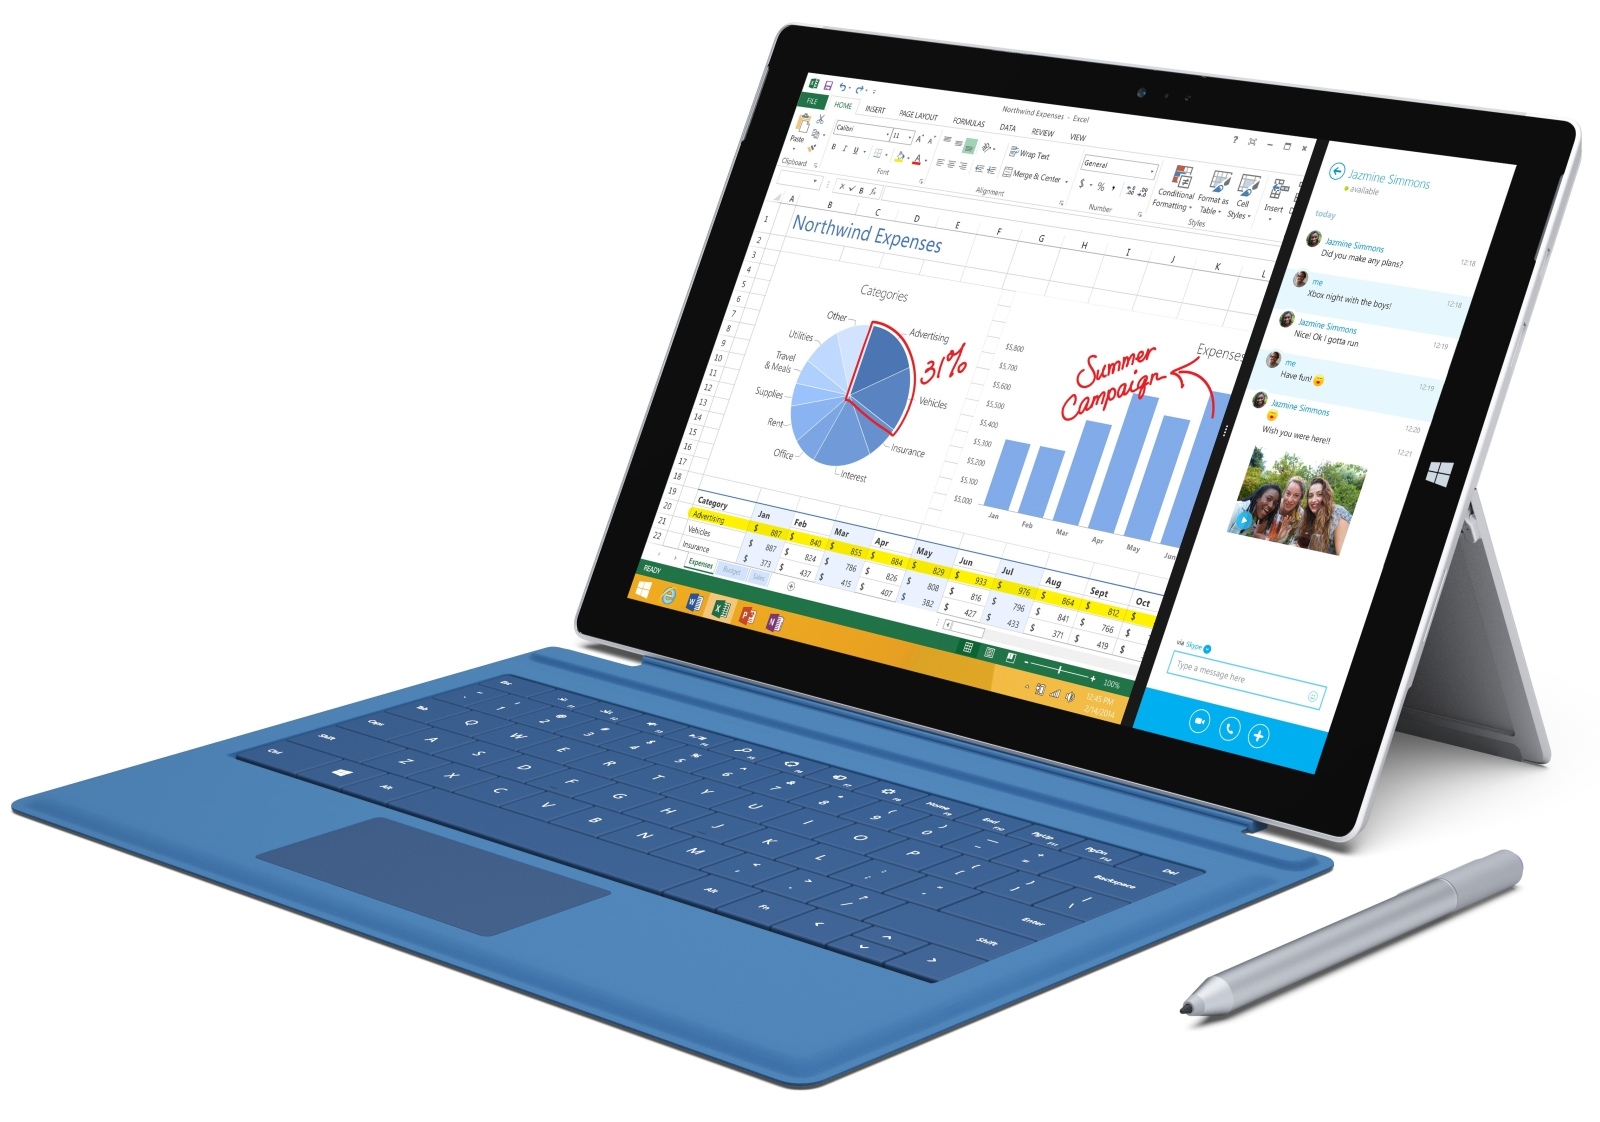 Microsoft Surface Pro 3 Complete Specifications & Details